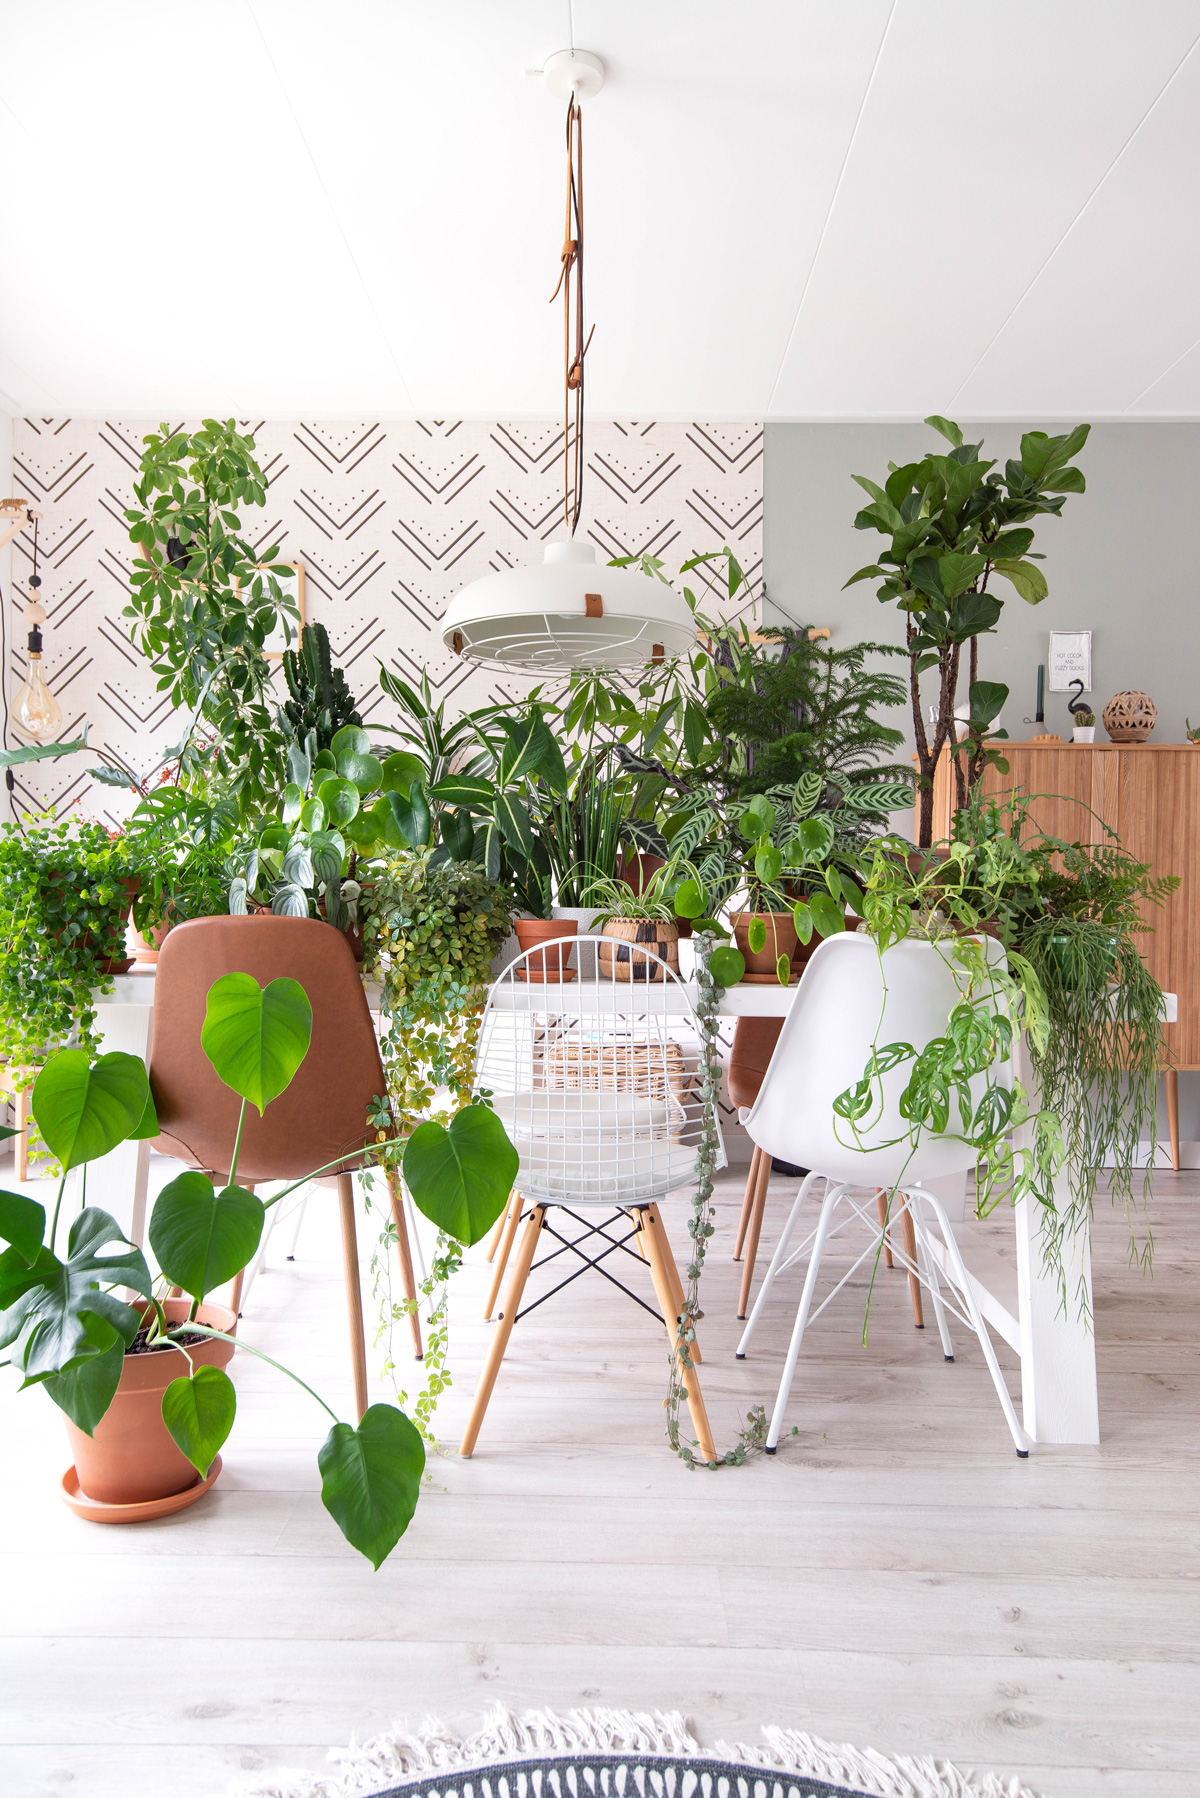 interieur keeelly91 urbanjungle jungalow houseplant crazyplantlady groenevingers diningroom eetkamer wallpaperdecor